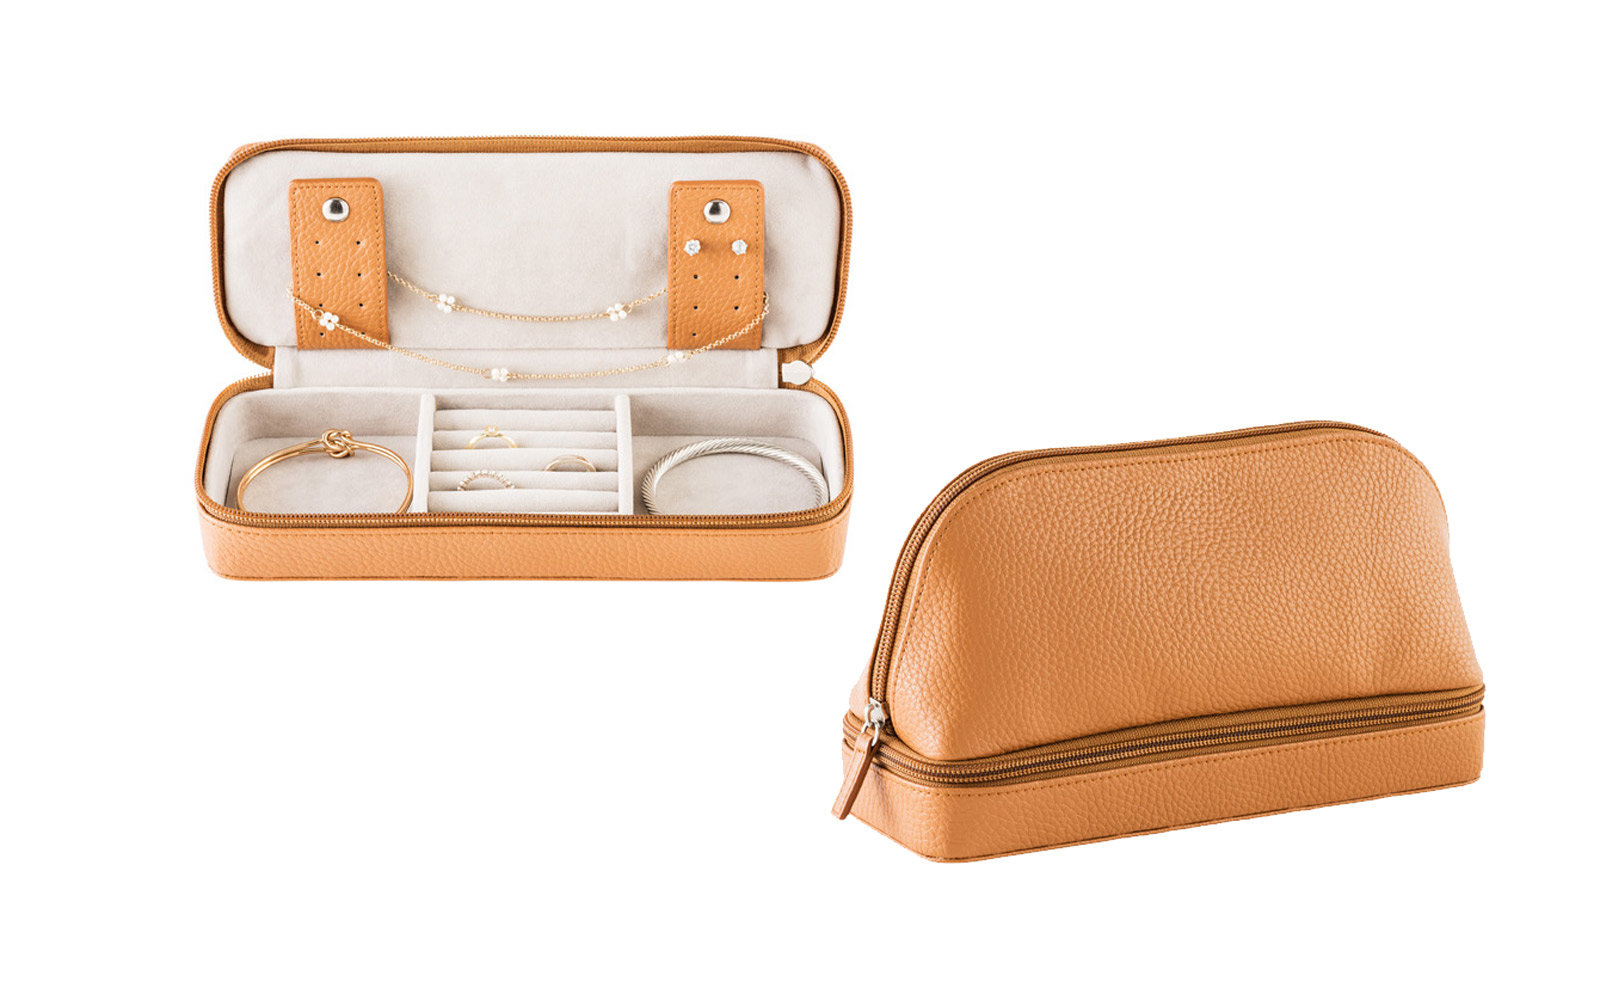 Stackers Makeup And Jewelry Travel Case